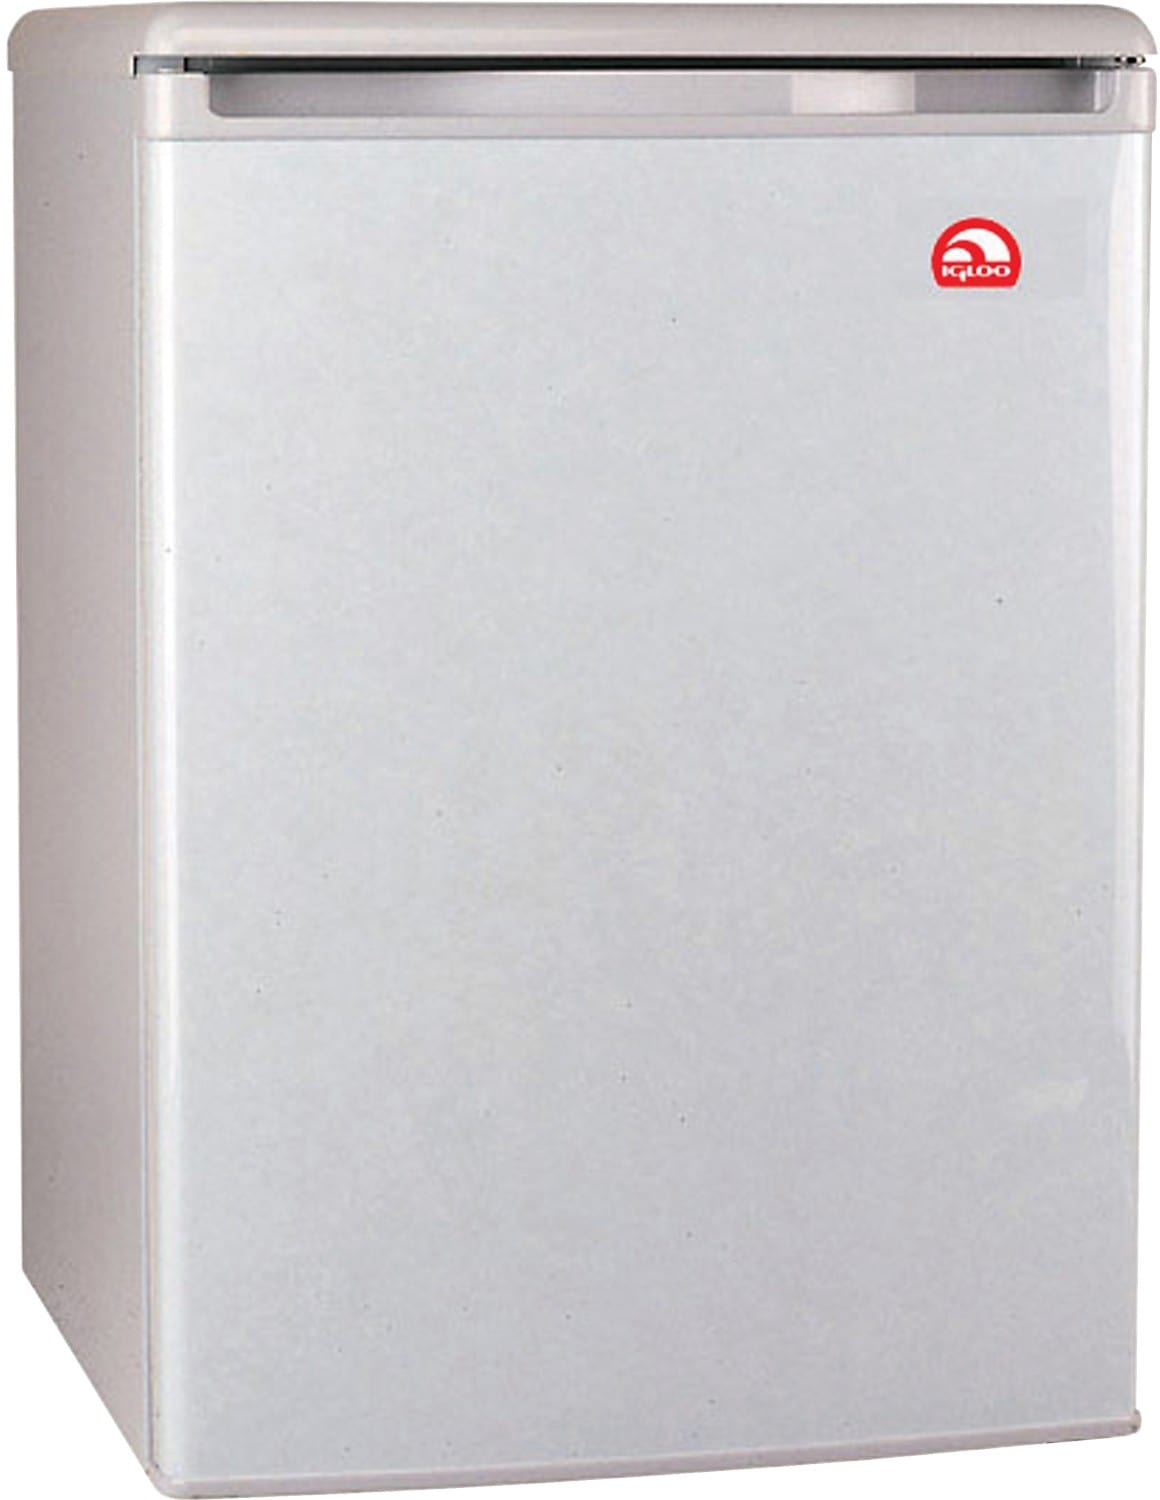 Igloo 3.2 Cu. Ft. Compact Refrigerator - White